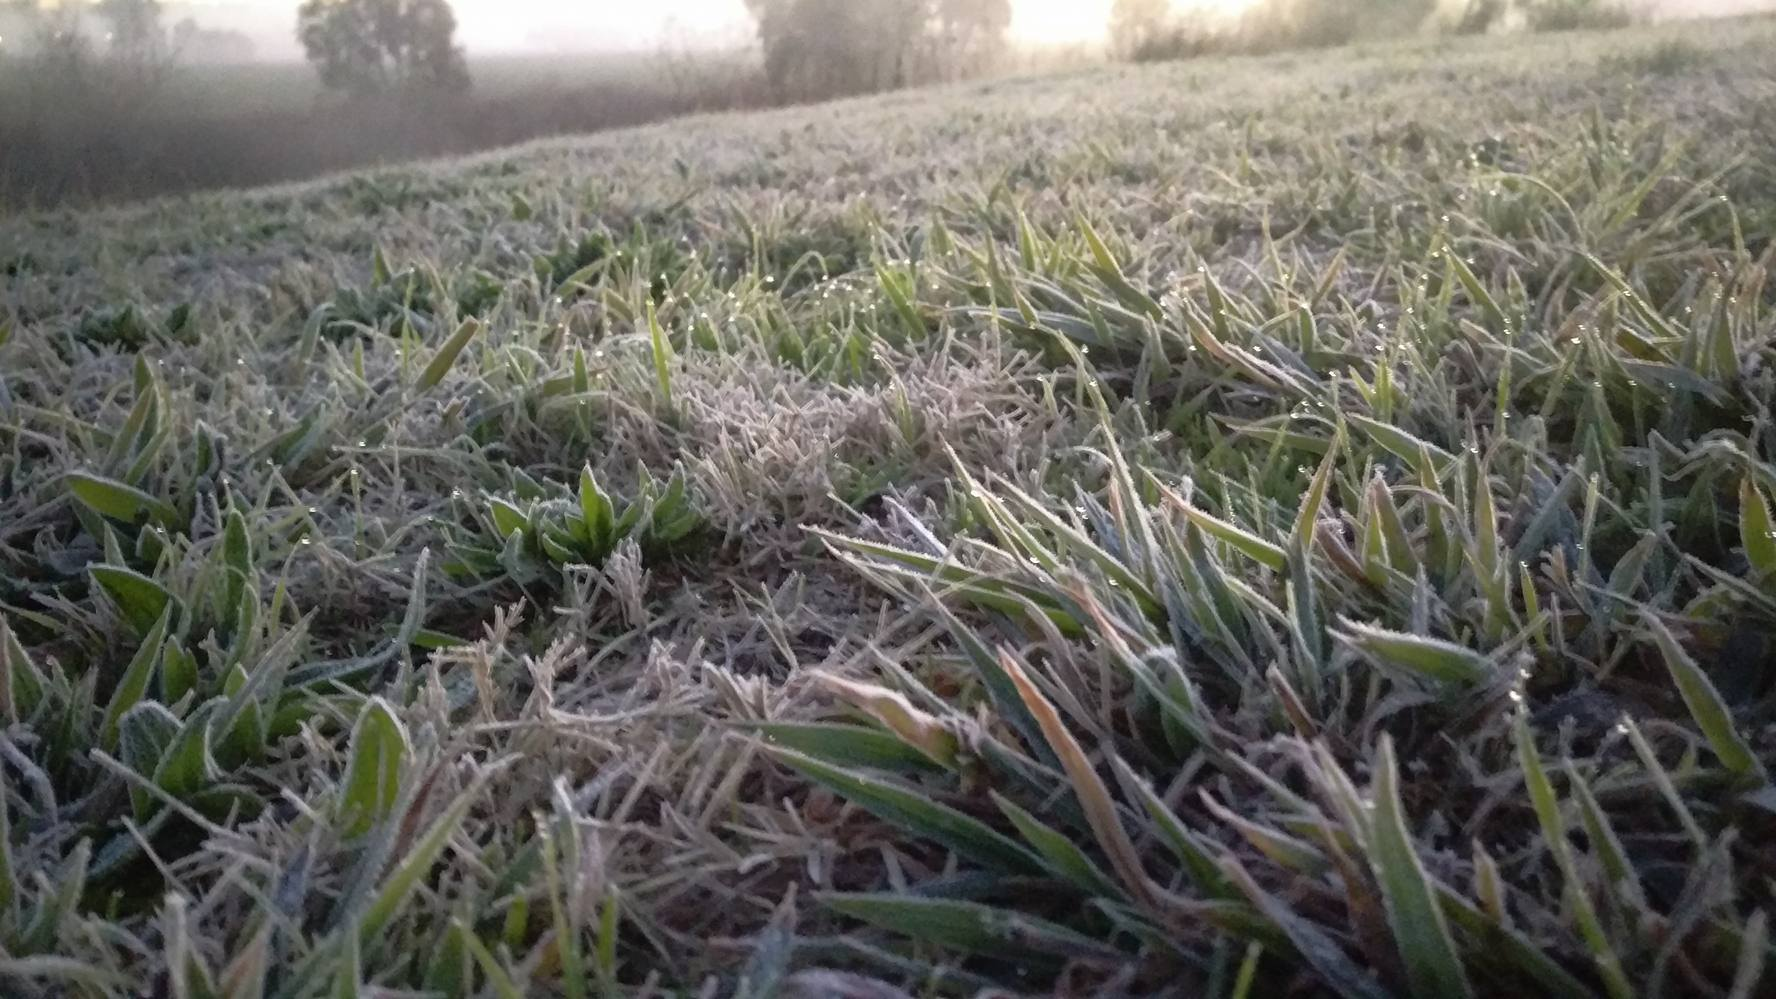 Frost on the ground near the Condamine River this morning in Warwick